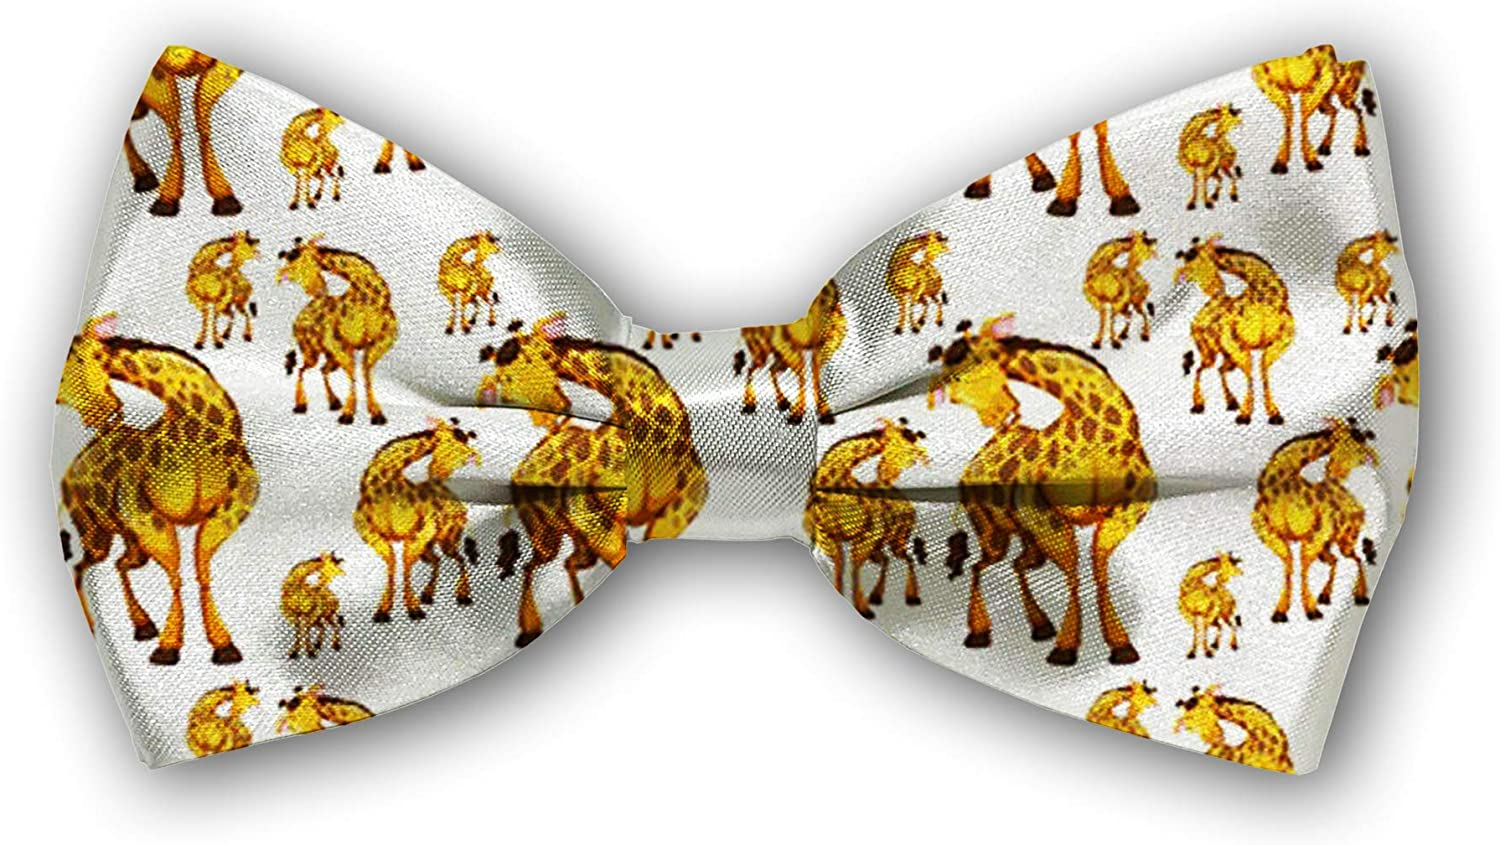 Bow Tie Tuxedo Butterfly Cotton Bowtie Max Spring new work one after another 40% OFF for Adjustable Boys Mens